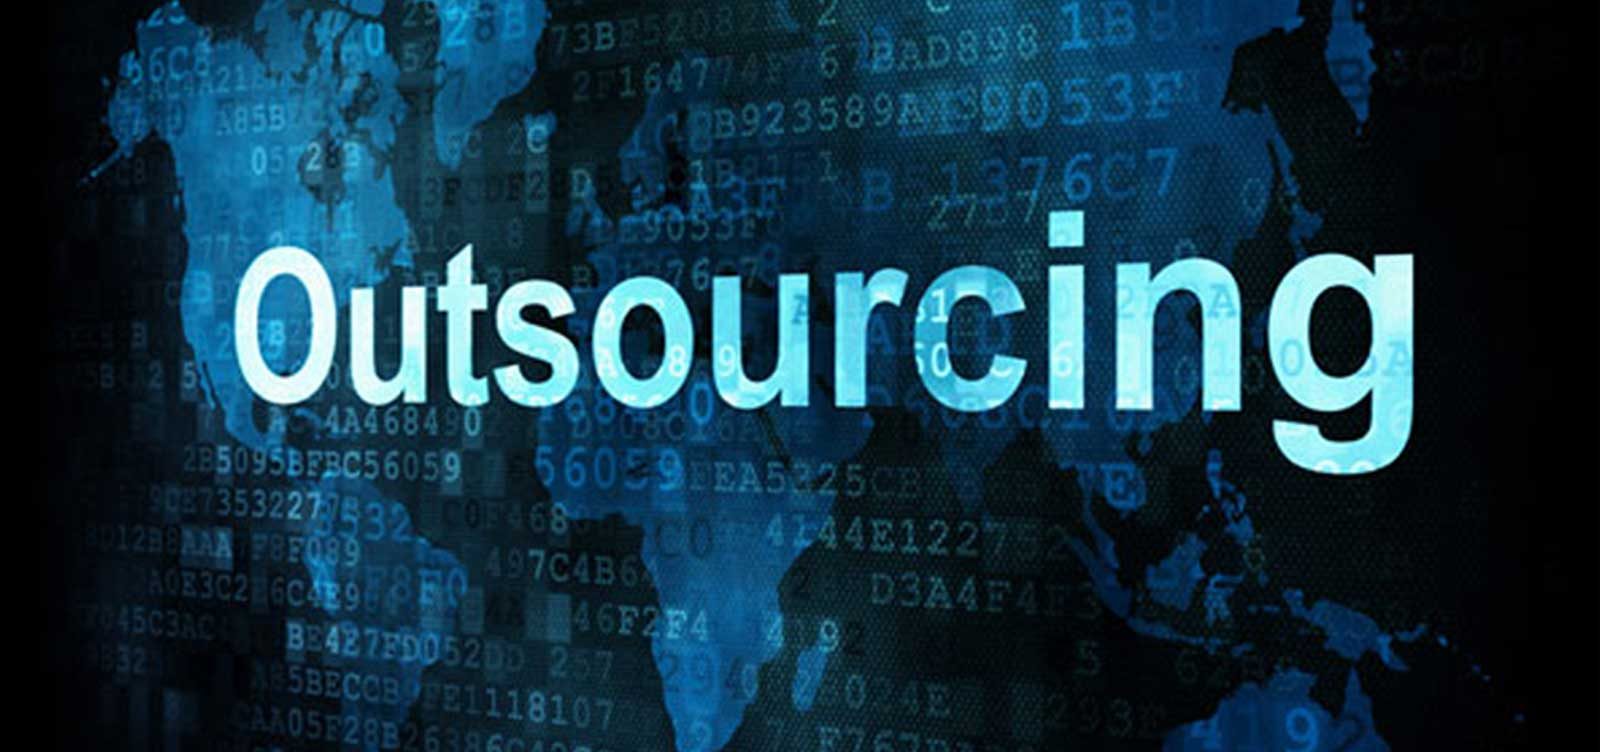 Enumerating the Most Preferrred Non-Core Enterprise Operations to Outsource for Newly-Established Firms